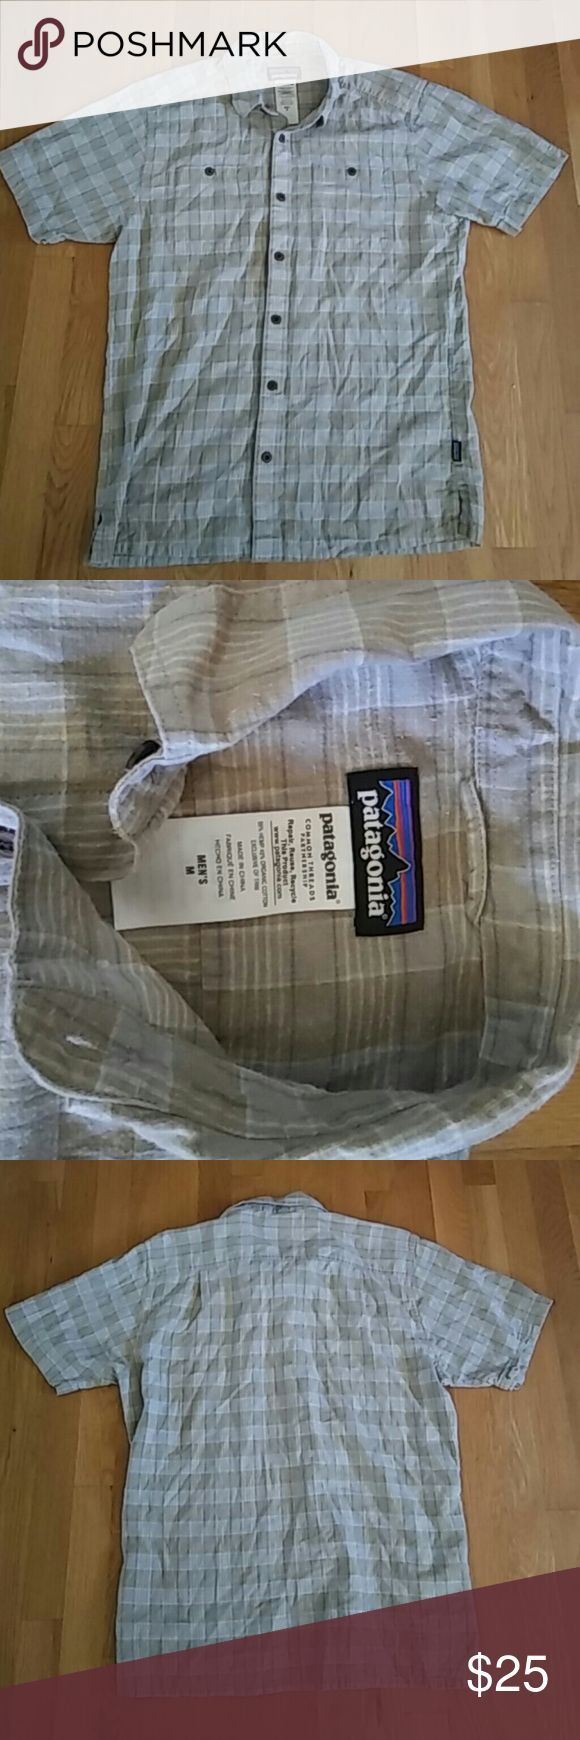 Selling this Patagonia cotton shirt sz m nice pattern on Poshmark! My username is: dannydanny1. #shopmycloset #poshmark #fashion #shopping #style #forsale #Patagonia #Other